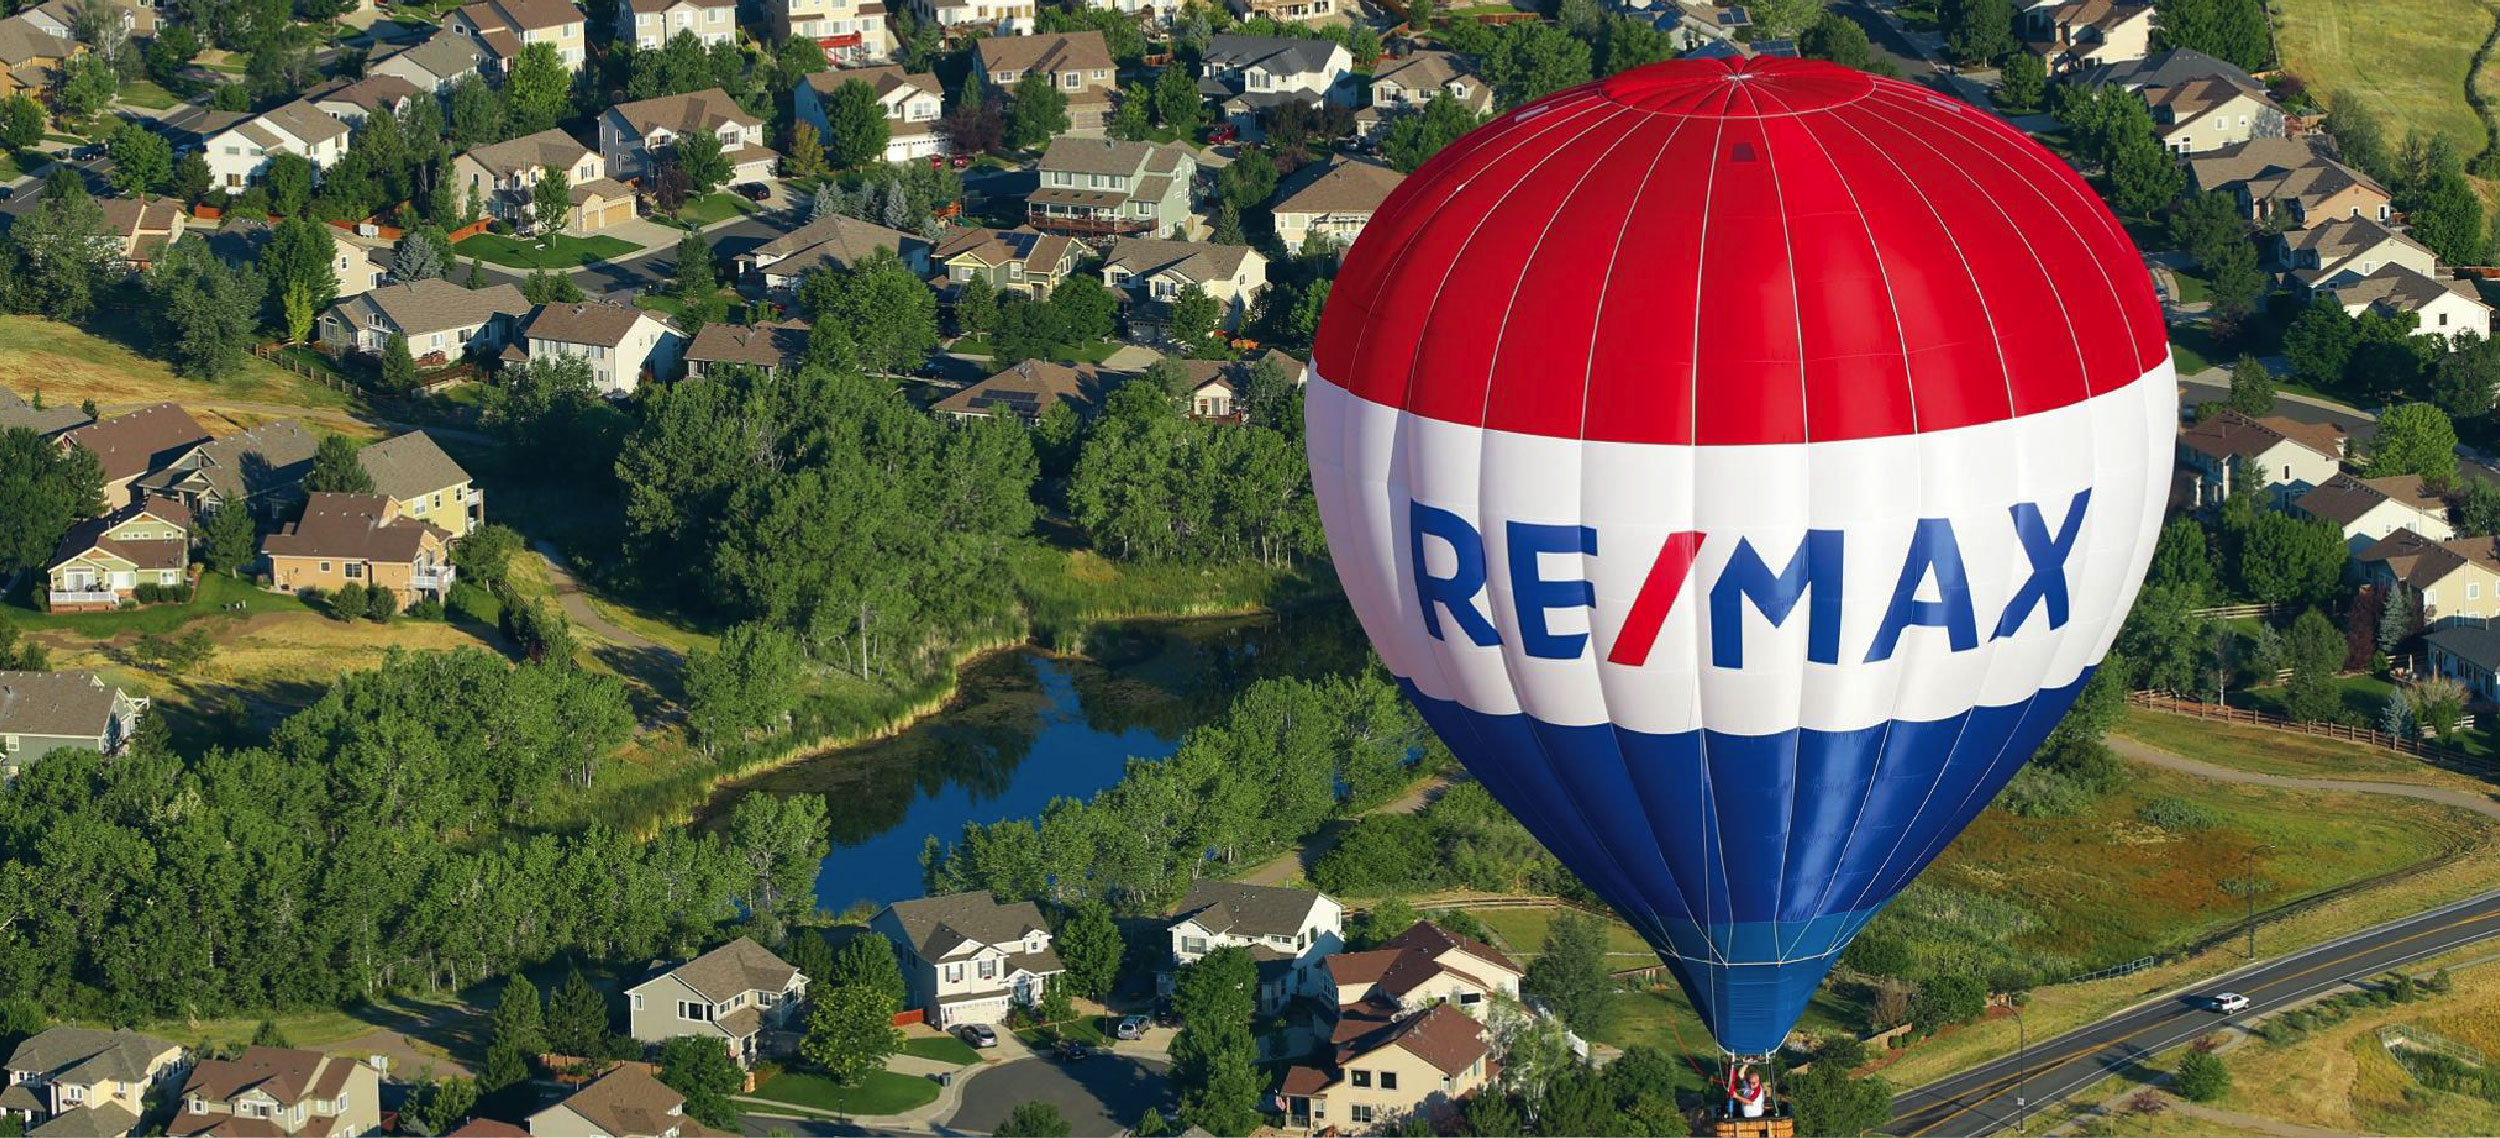 REMAX new logo balloon